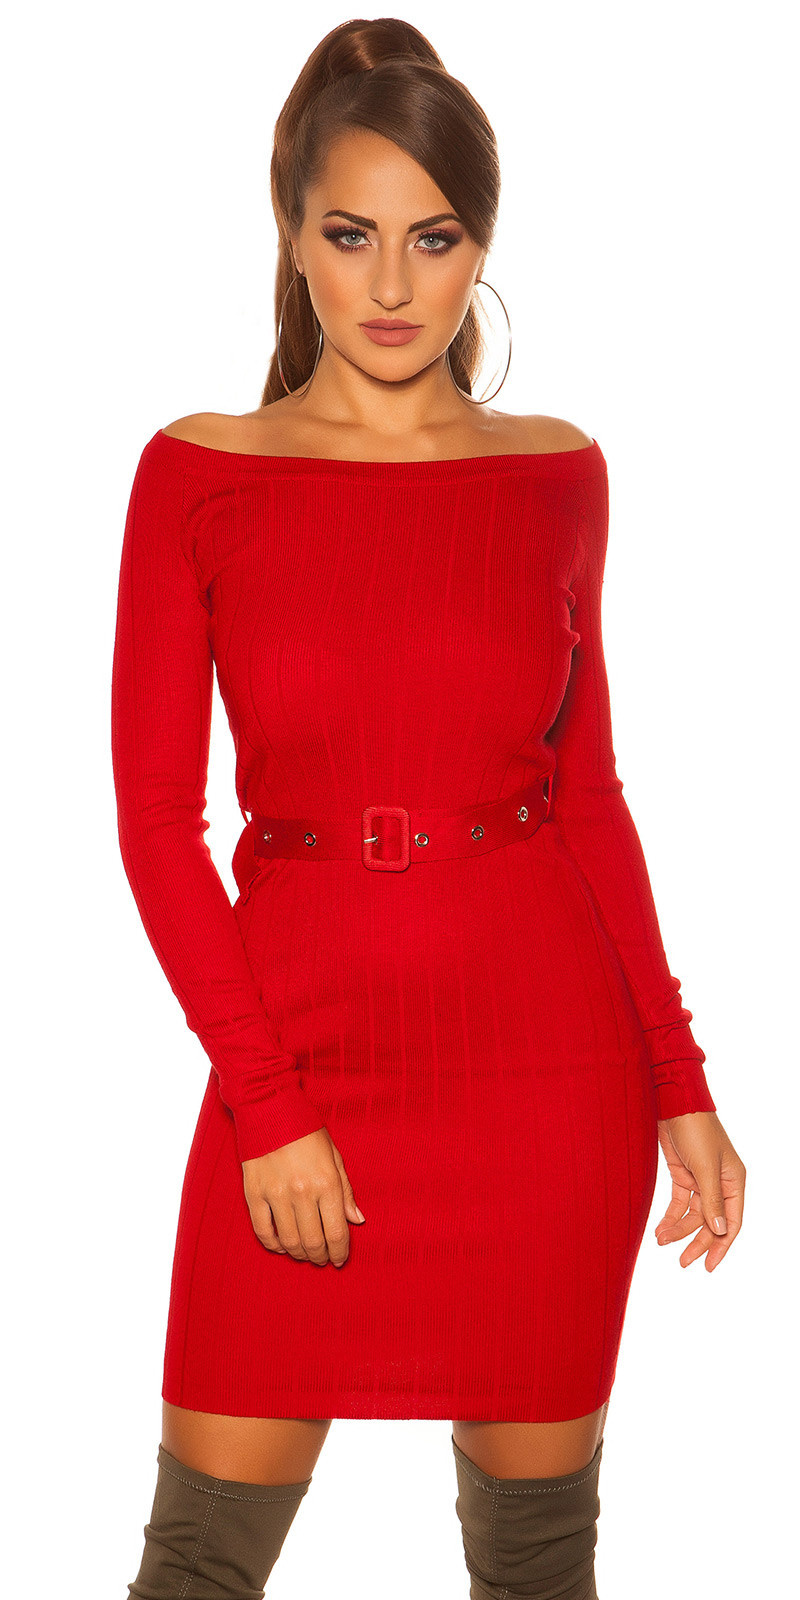 Sexy rib knit mini dress with belt Red